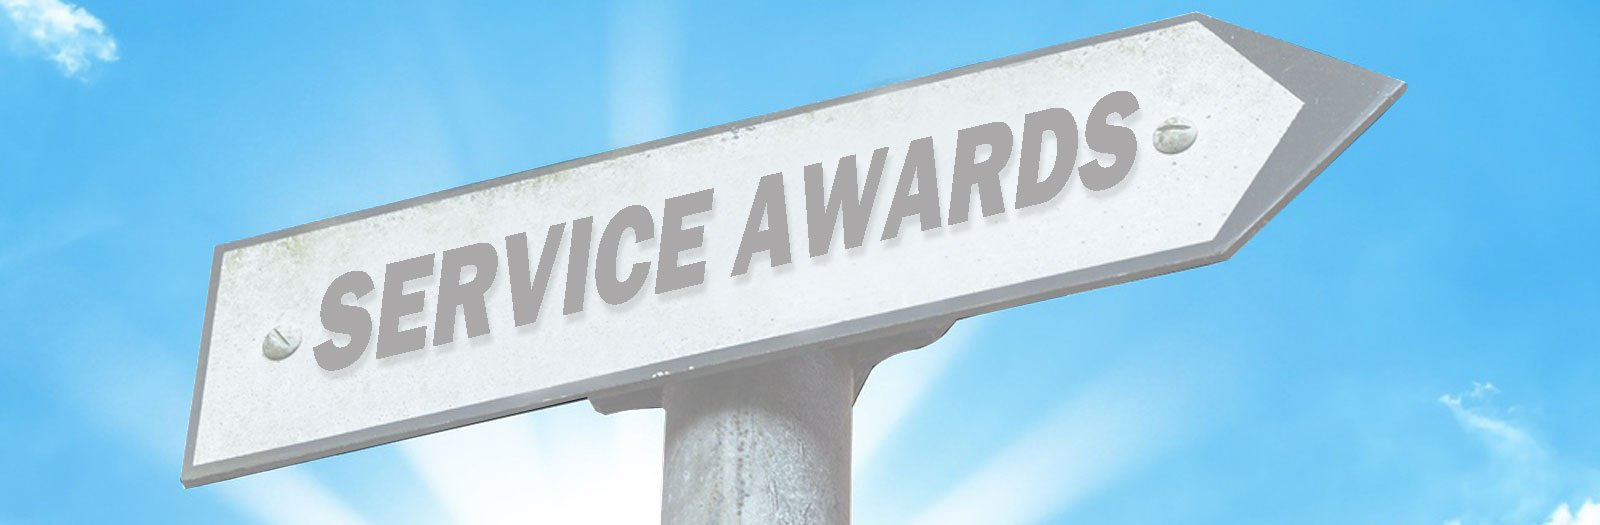 Why Different Corporate Service Awards Are Essential?